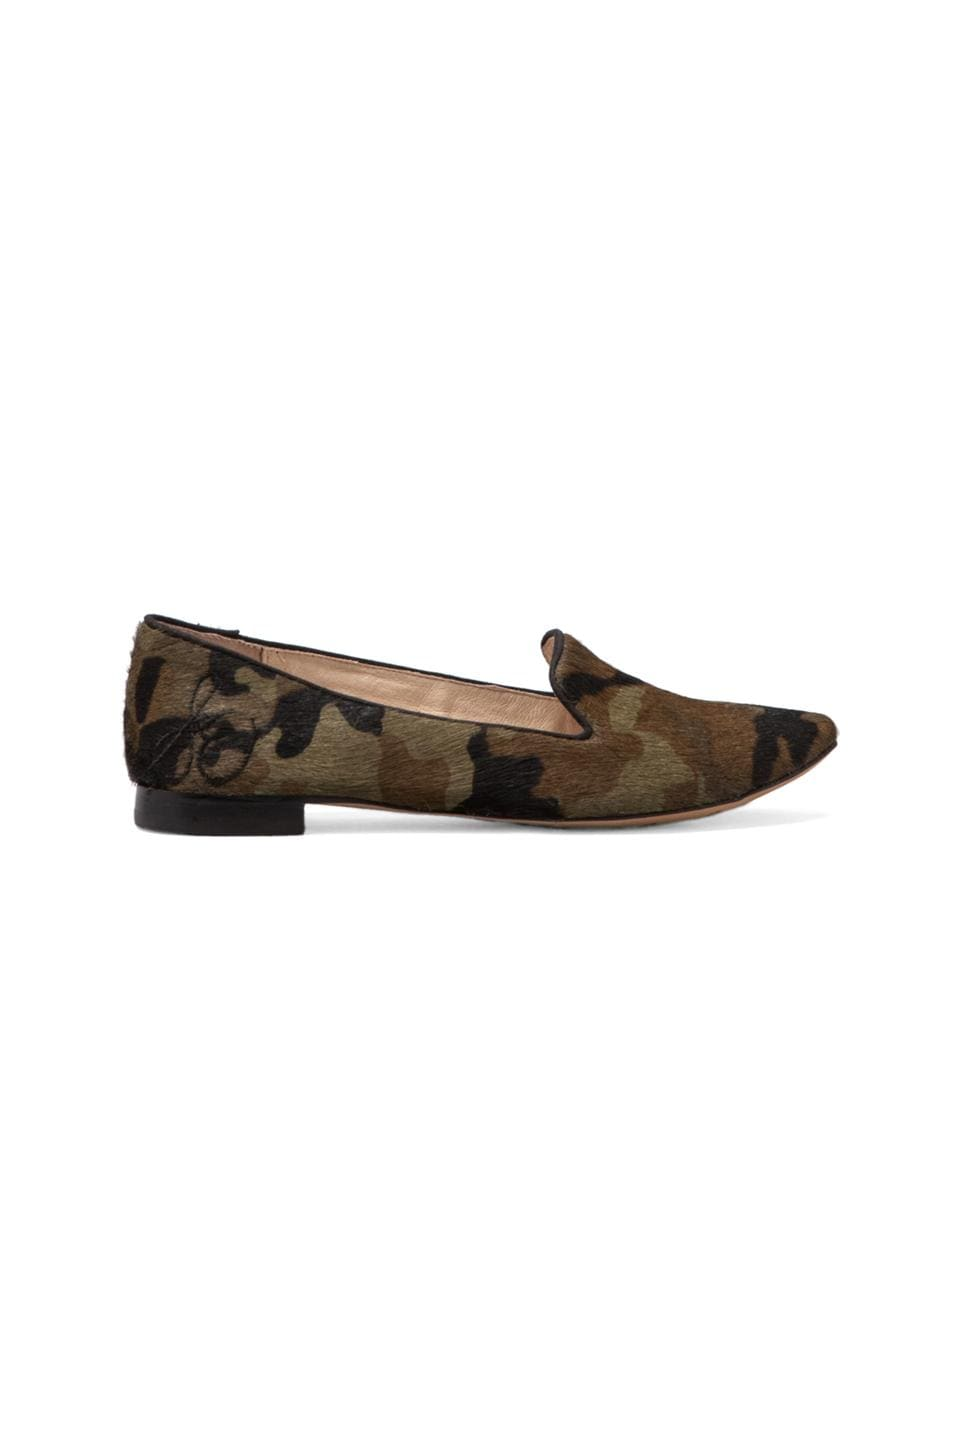 Sam Edelman Alvin Flat with Calf Hair in Olive